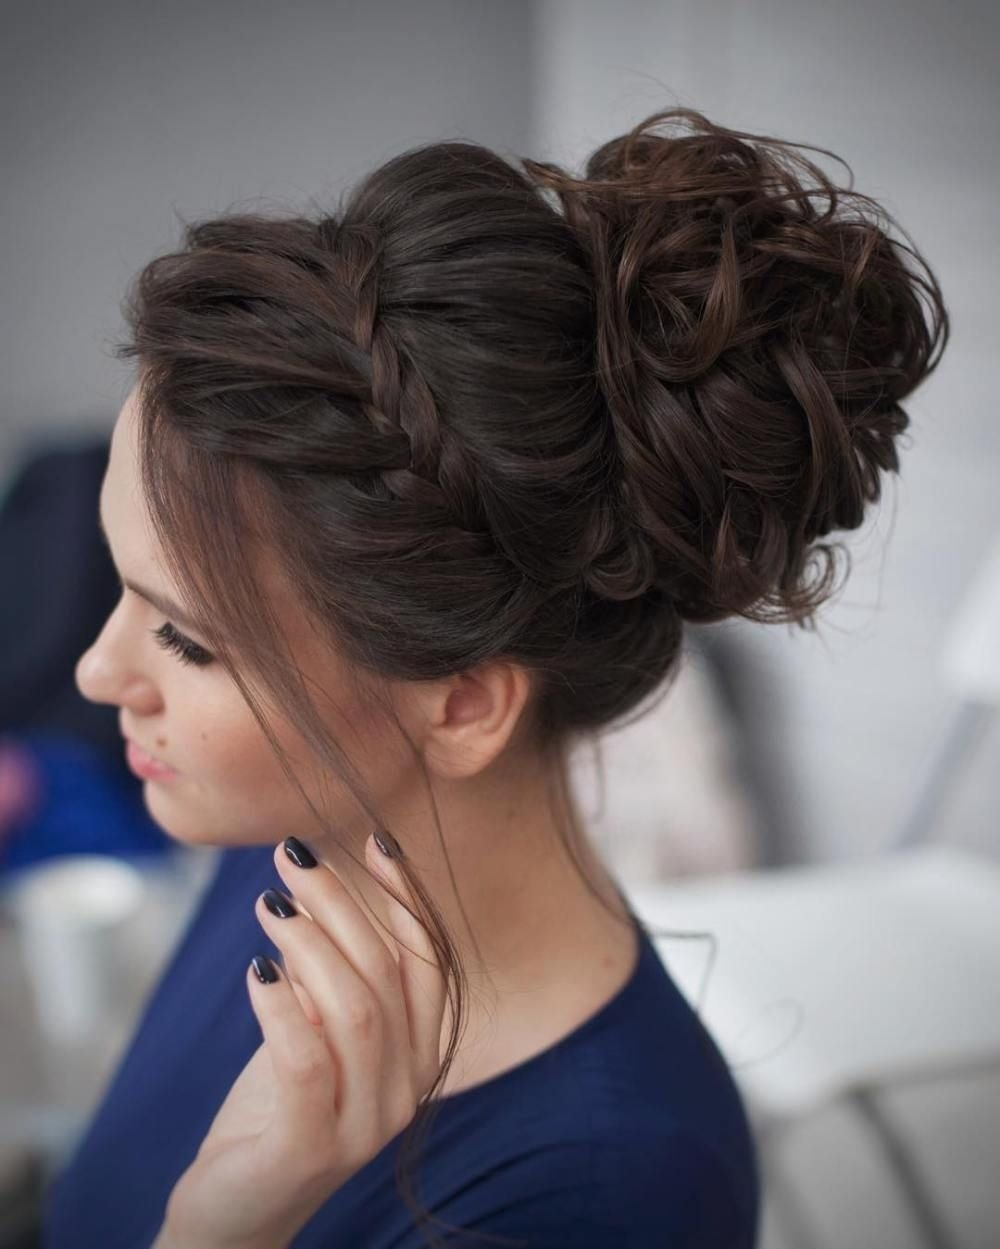 10 Most Recommended Prom Hair Ideas For Long Hair 40 most delightful prom updos for long hair in 2018 updo prom and 2020